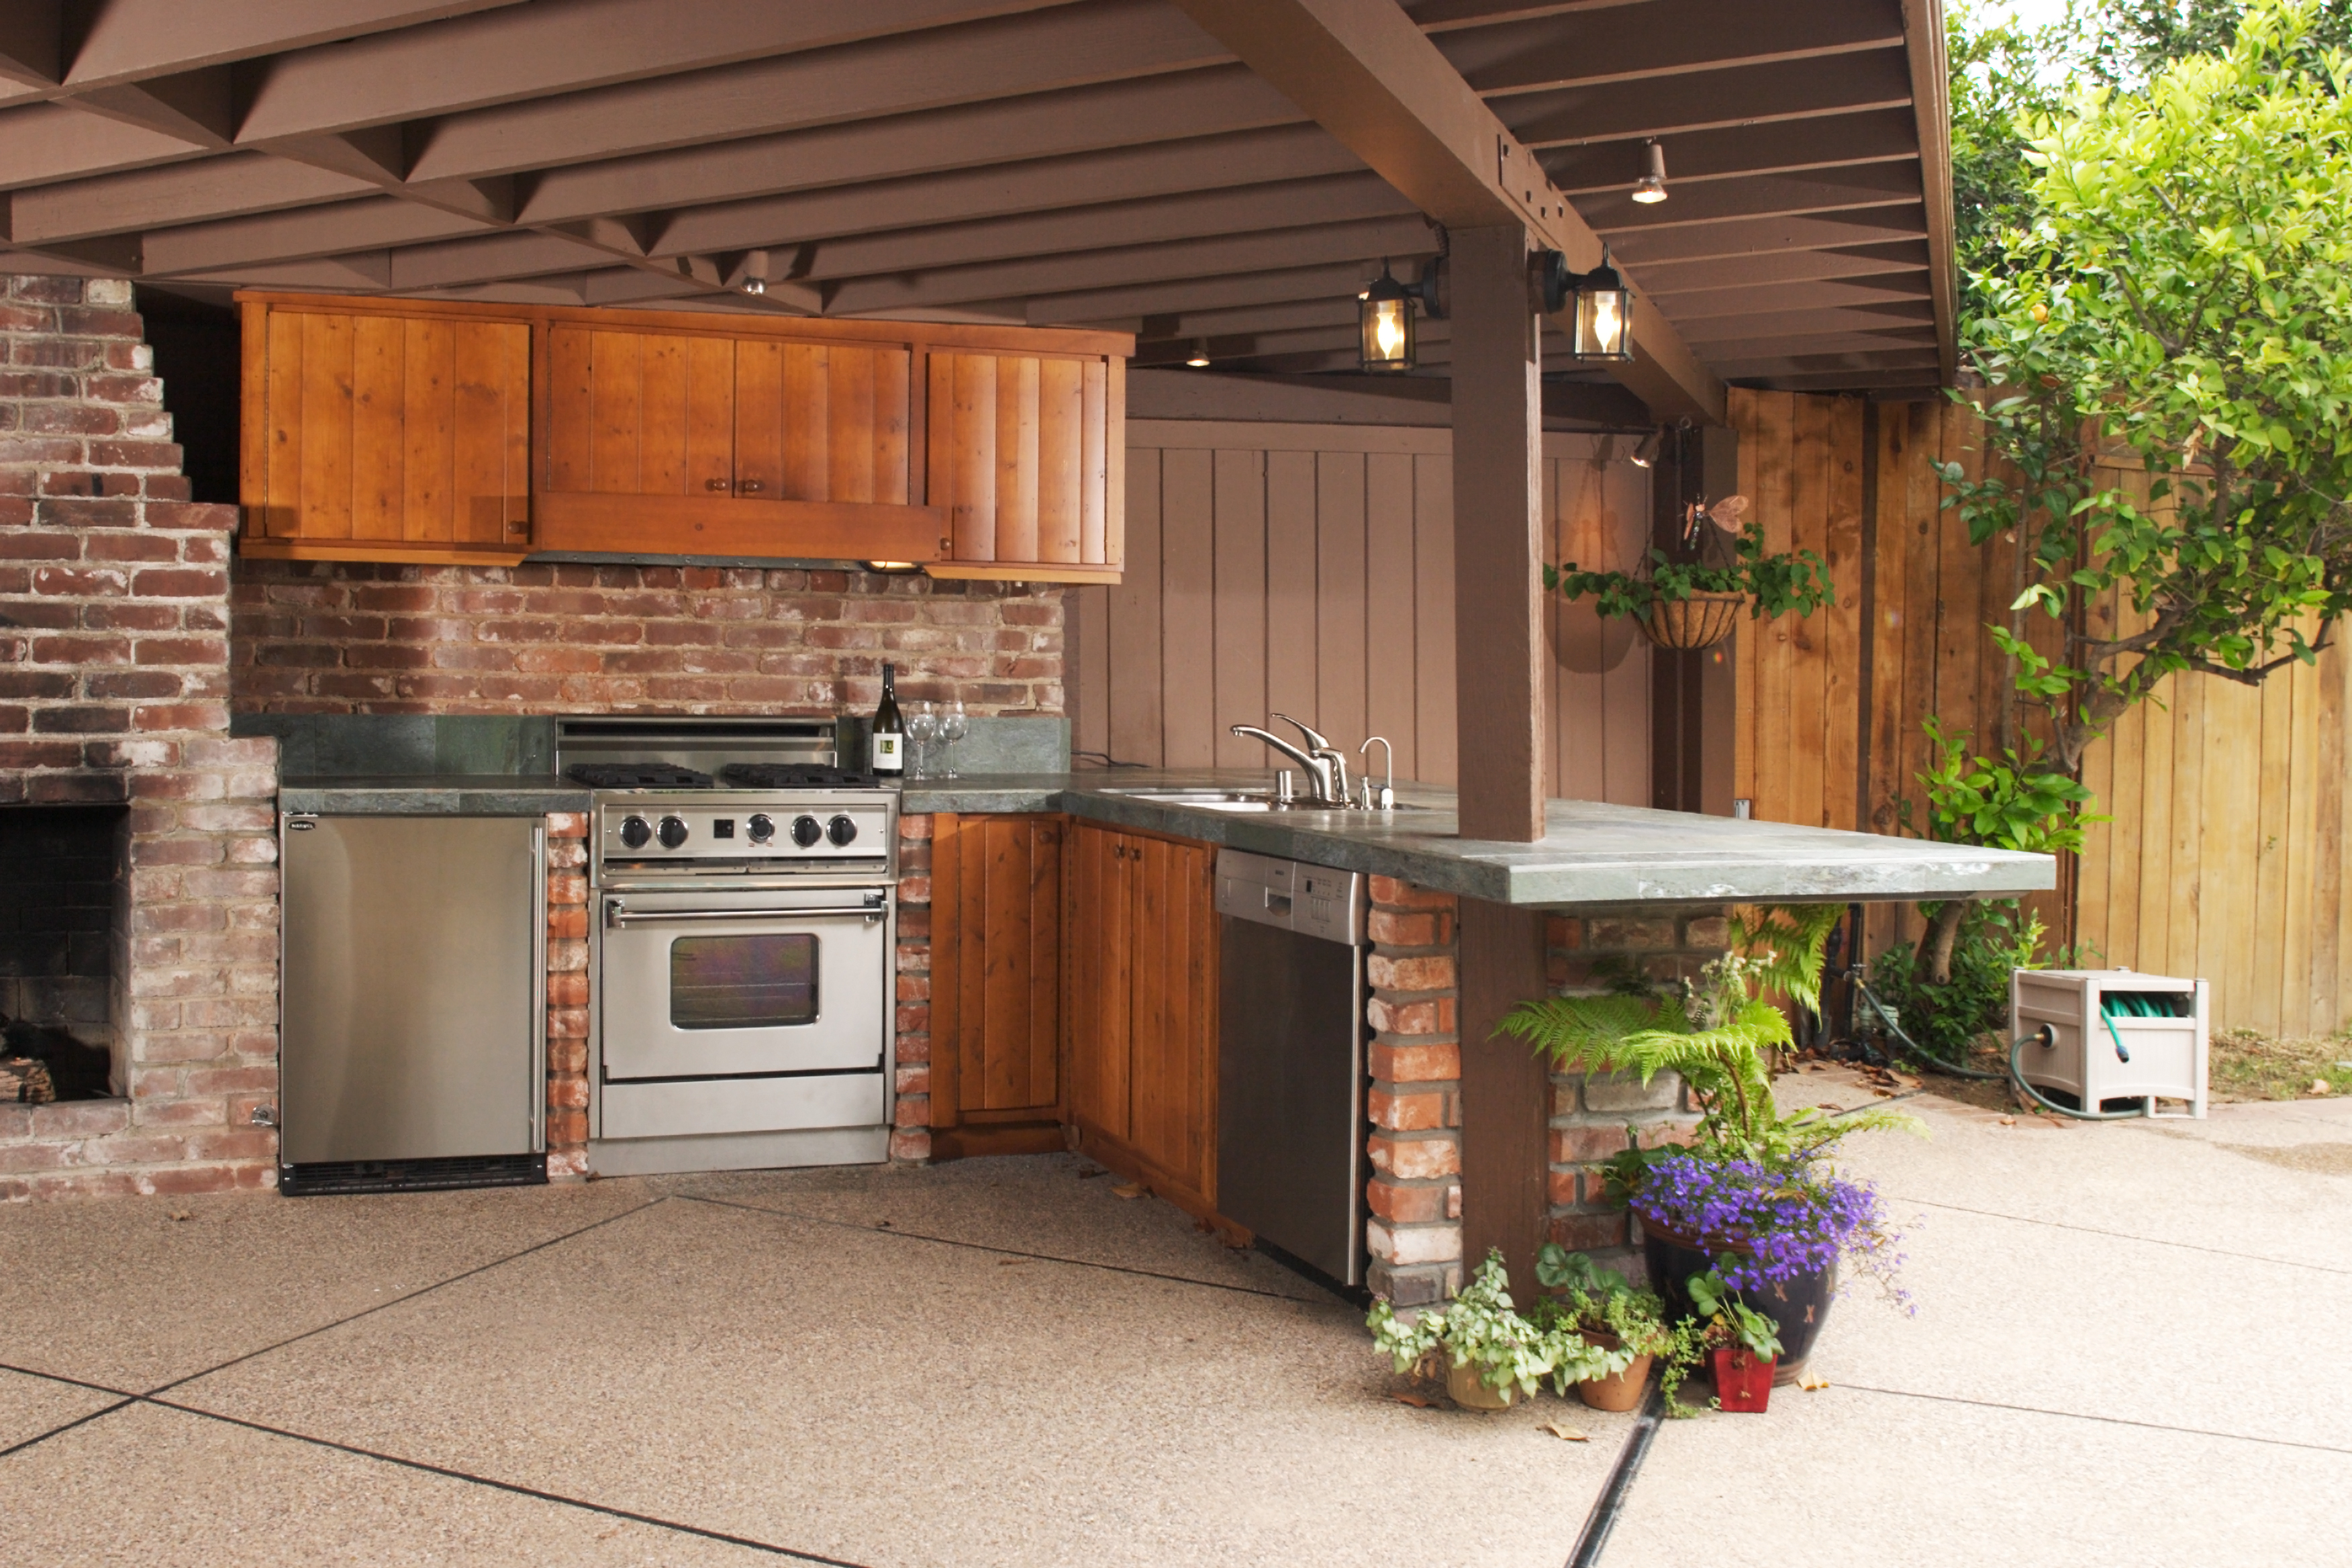 Reliable construction remodeling 800 222 0565 for Reliable remodeling